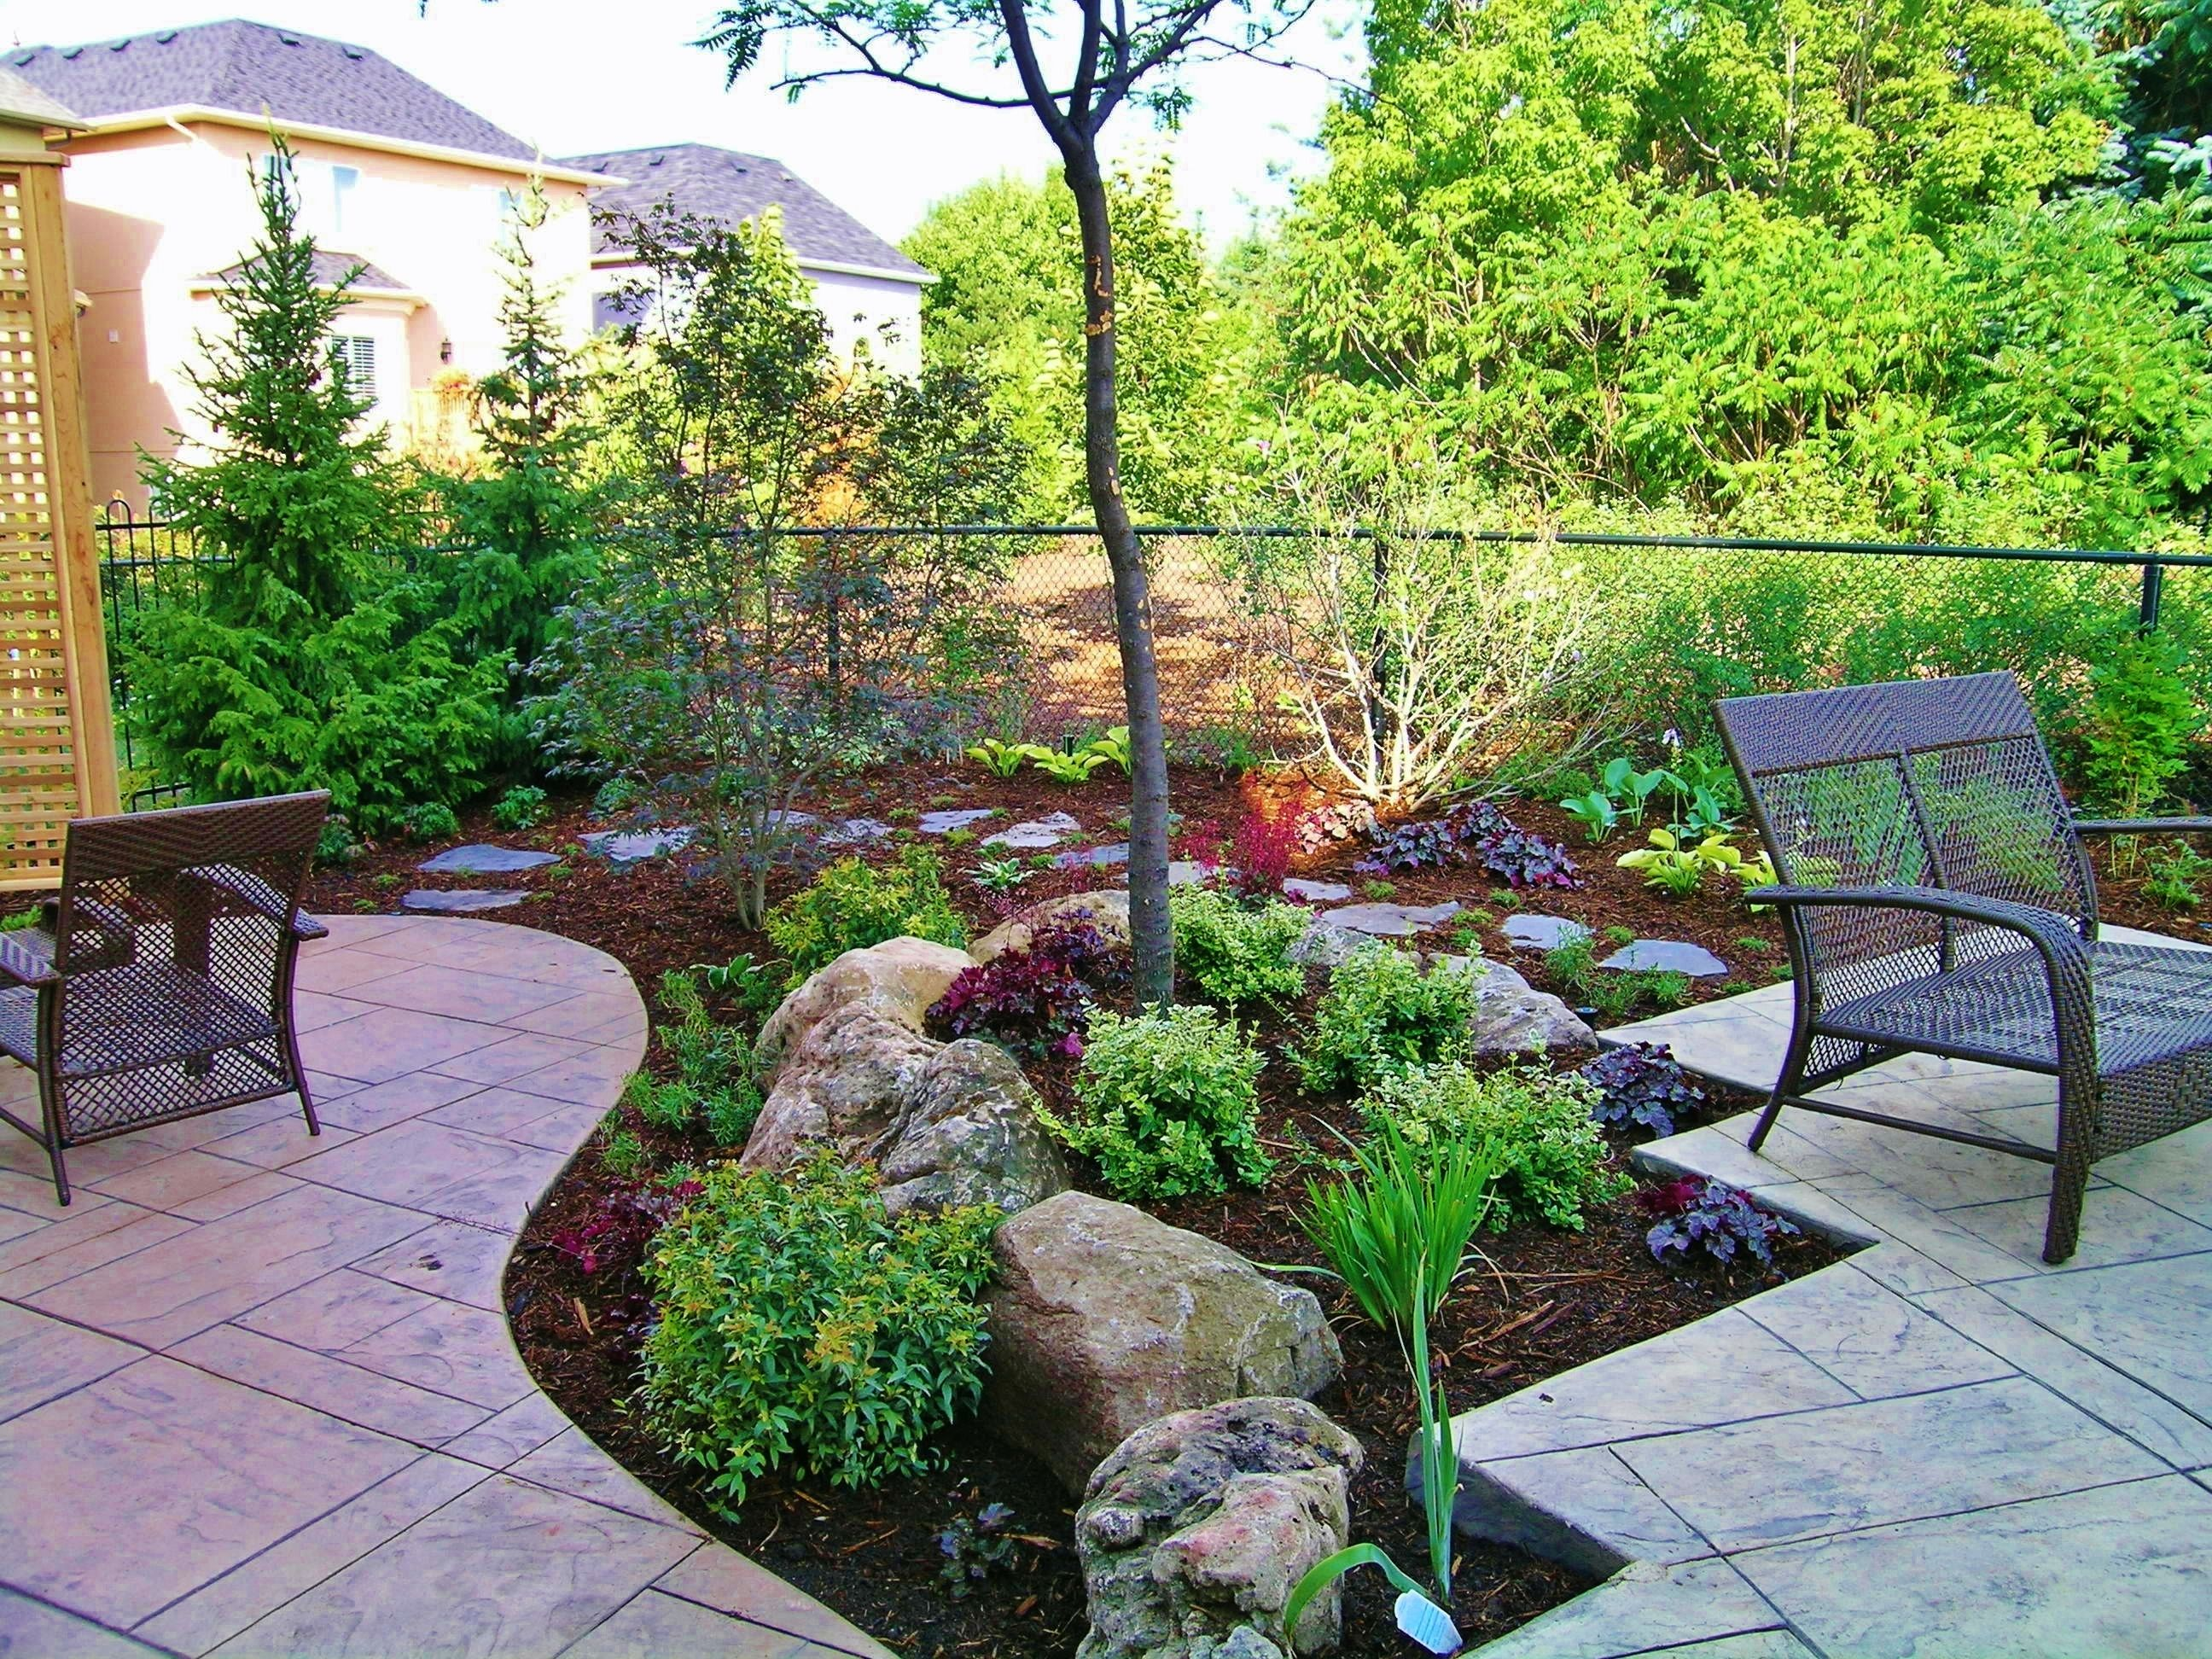 Backyard without grass garten landscape designs and grasses for Using grasses in garden design